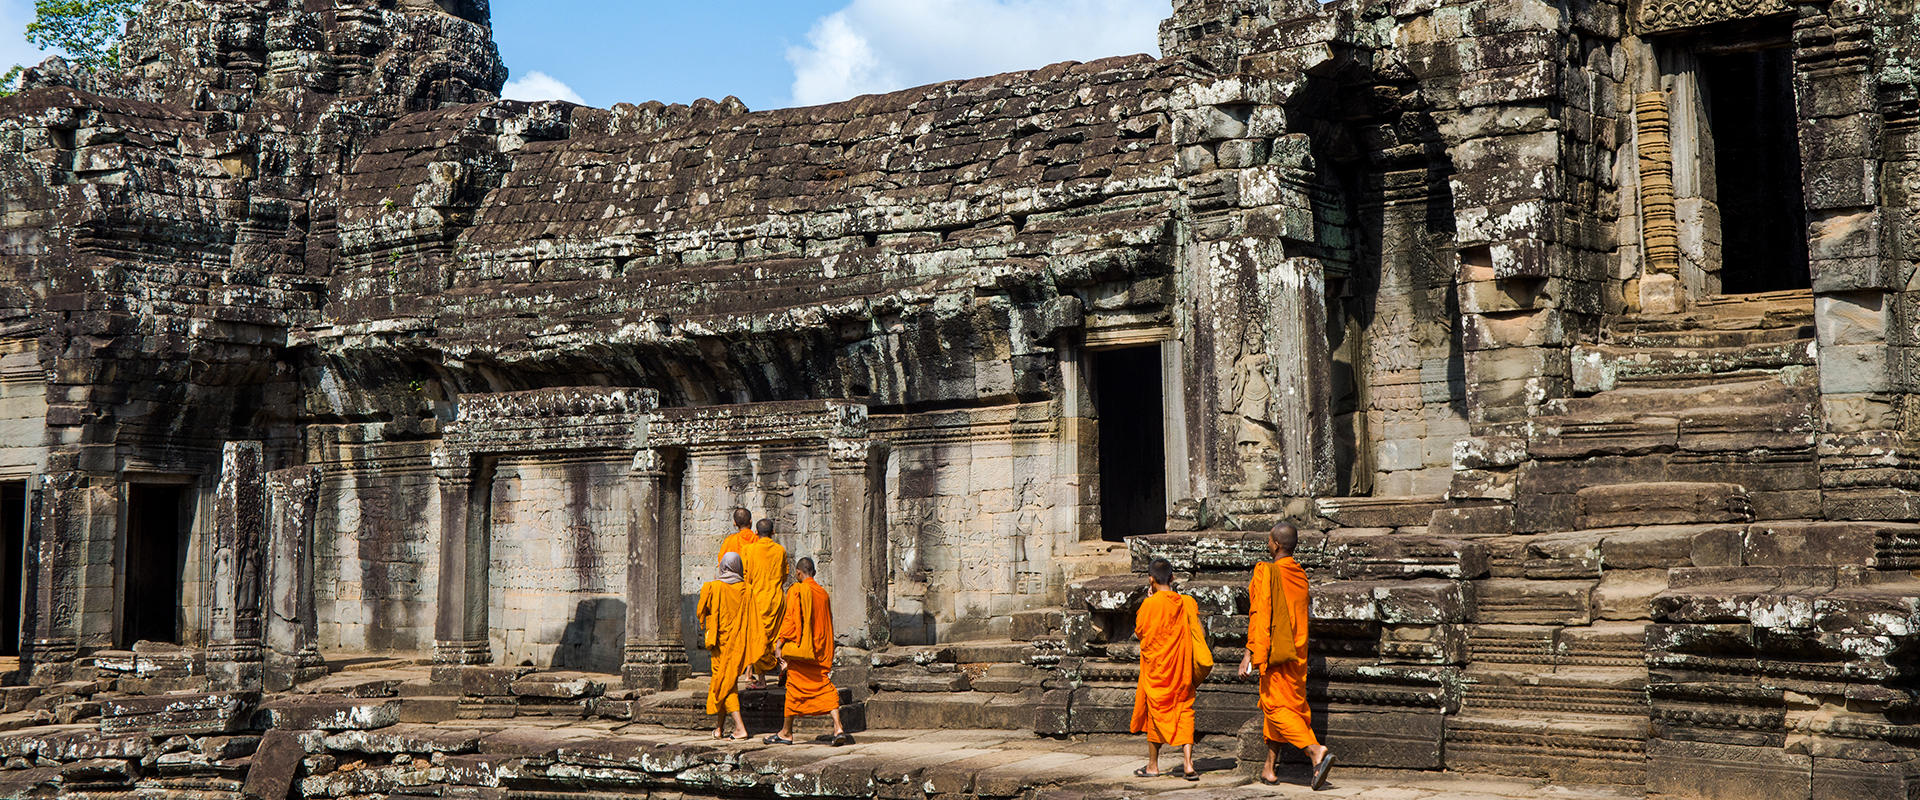 The Grantourismo Travels Guide to Siem Reap, Cambodia. Copyright © 2017 Terence Carter / Grantourismo. All Rights Reserved.